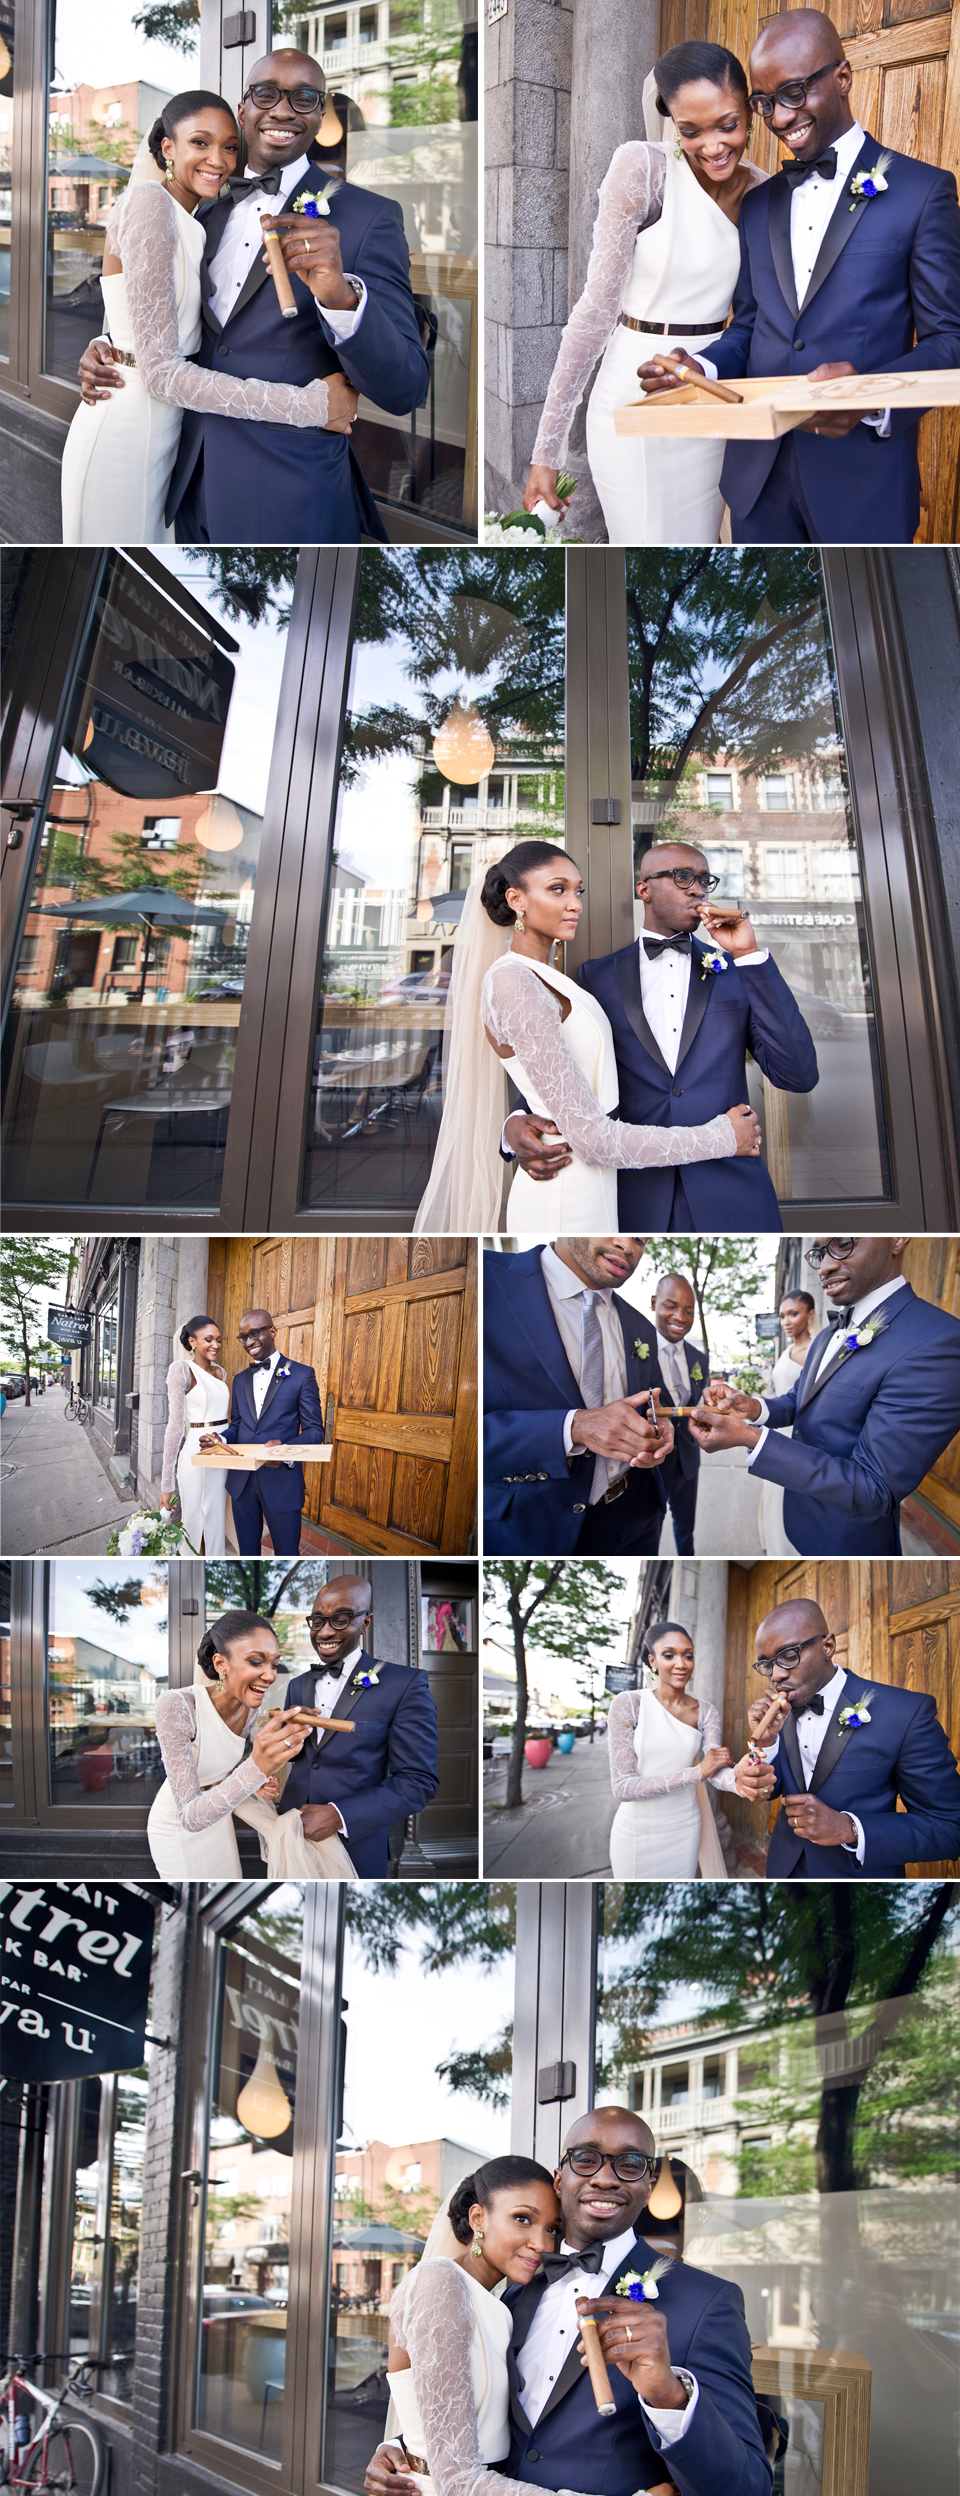 Montreal Wedding Photographer | Creative Shoot | Chateau St. Ambroise | Montreal Quebec | LMP Photography and Videography